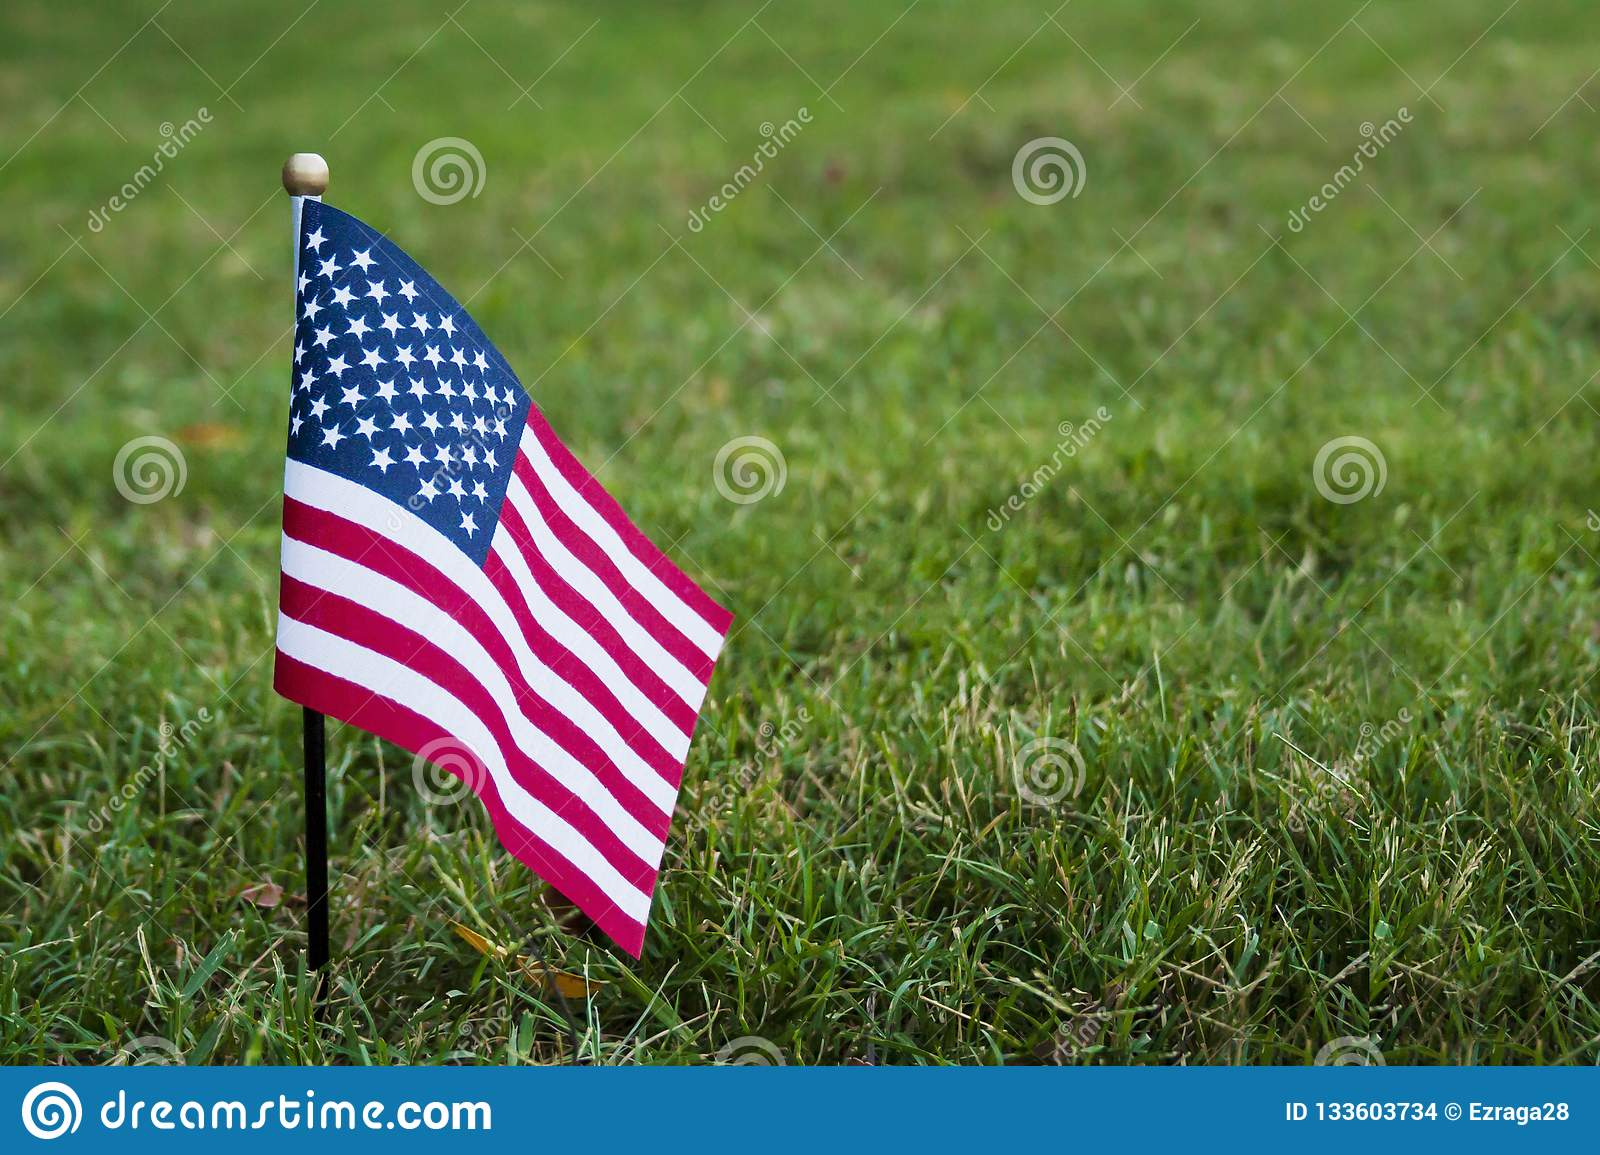 Small American flag on the grass